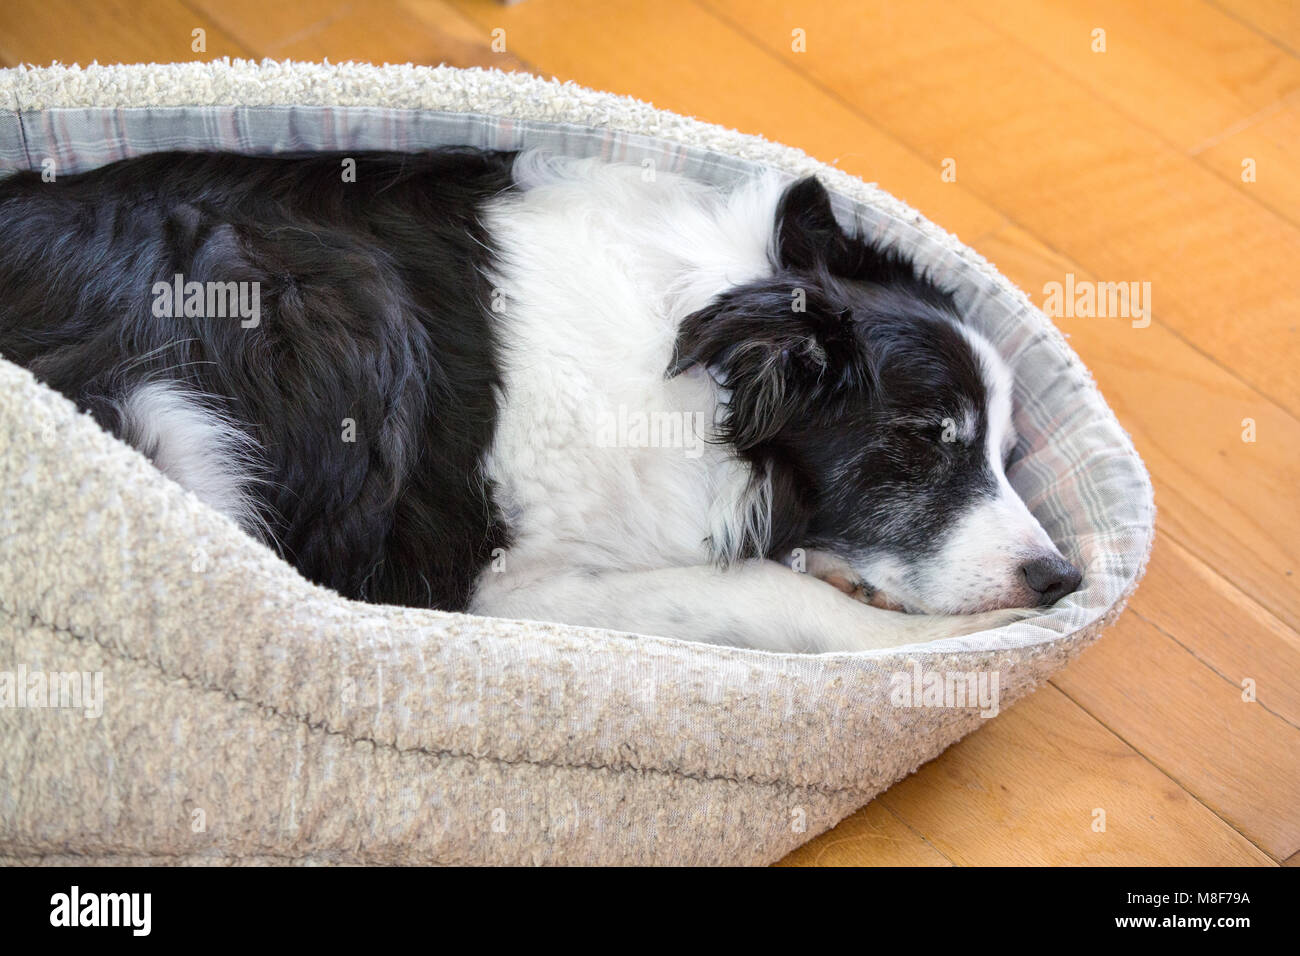 An old Border Collie dog snoozing in his bed. - Stock Image